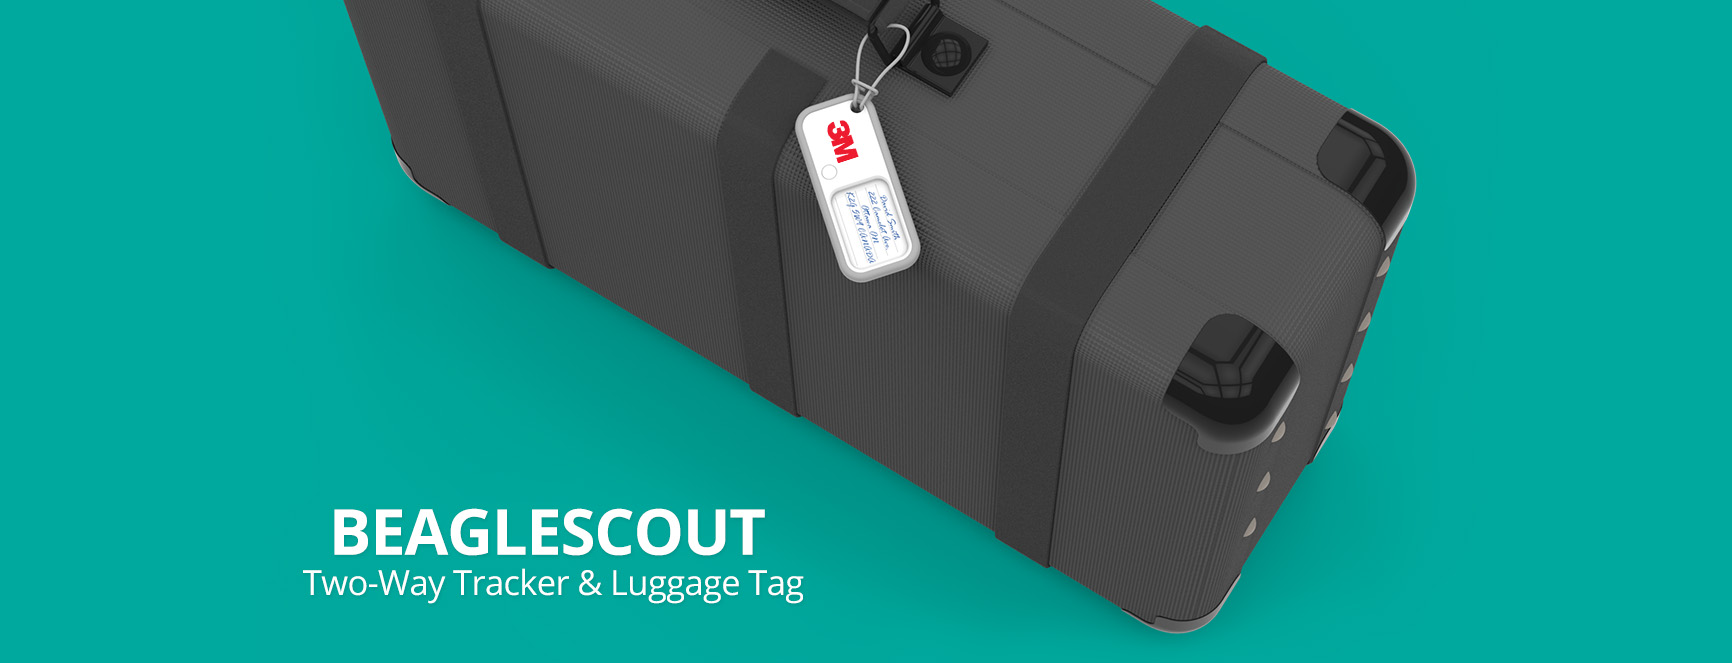 BeagleScout Luggage